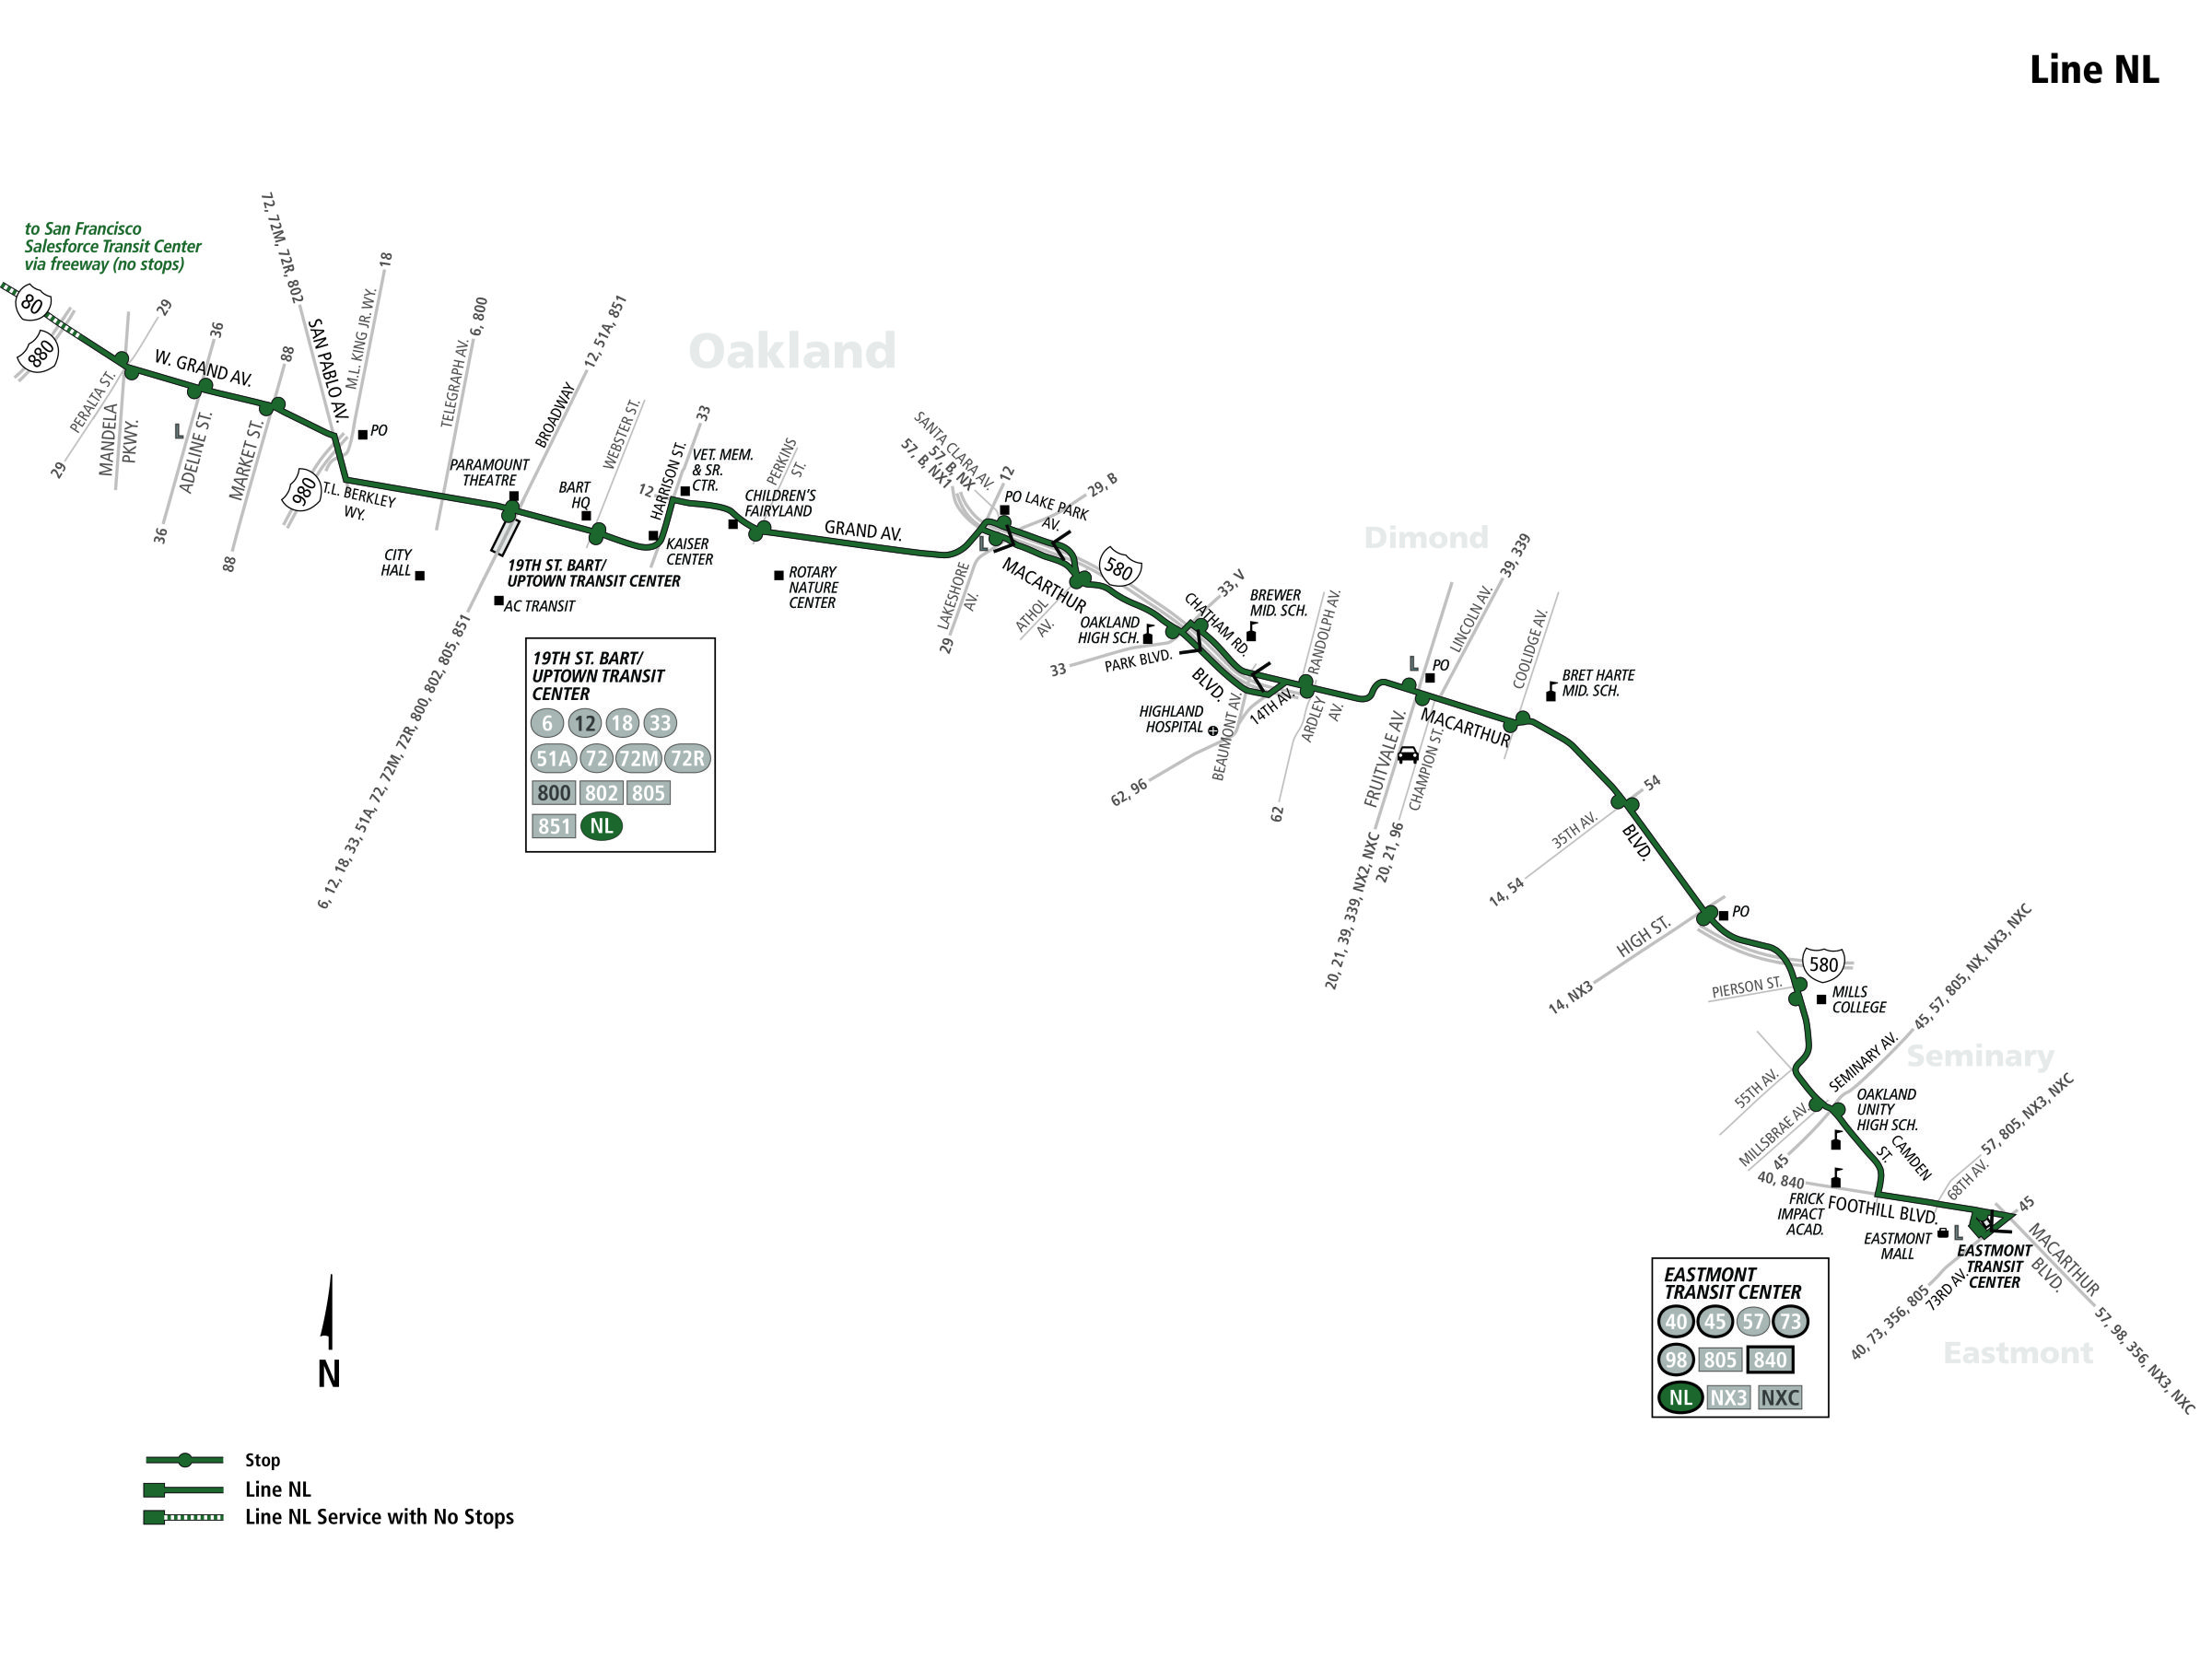 NL Bus Route - AC Transit - SF Bay Transit San Francisco Bus Map Schedule on new haven bus schedule, broward bus schedule, cincinnati bus schedule, shreveport bus schedule, downtown disney bus schedule, ocala bus schedule, transbay bus schedule, pittsburgh bus schedule, guangzhou bus schedule, west hartford bus schedule, hawaii bus schedule, austin bus schedule, cheyenne bus schedule, akron bus schedule, kingston bus schedule, key west bus schedule, anchorage bus schedule, coralville bus schedule, nj bus schedule, indianapolis bus schedule,